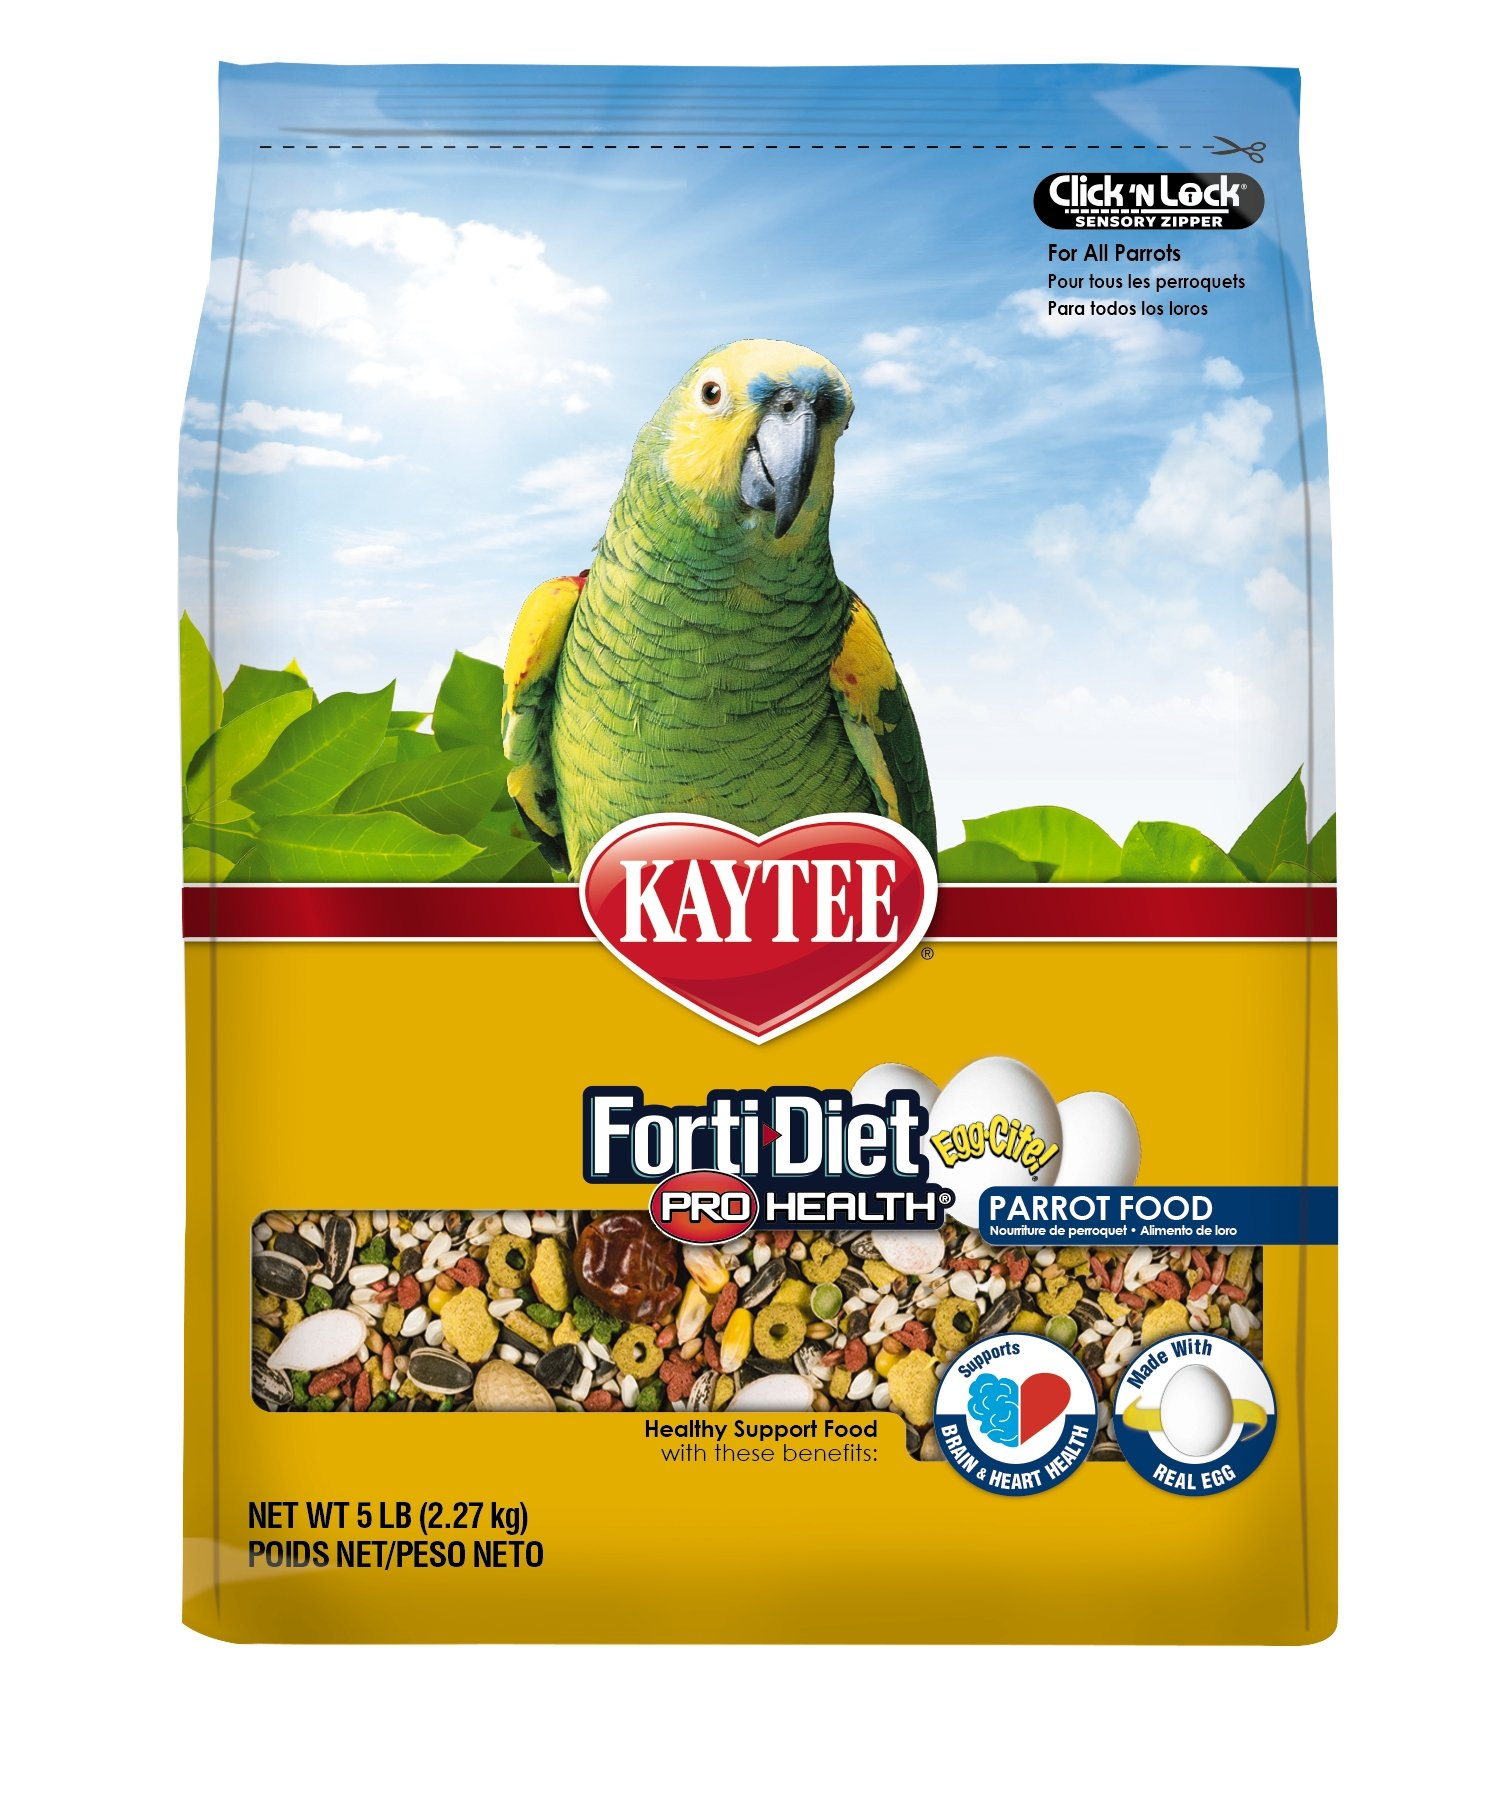 Kaytee Forti Diet Egg-Cite Bird Food for Parrots, 5-Pound Bag